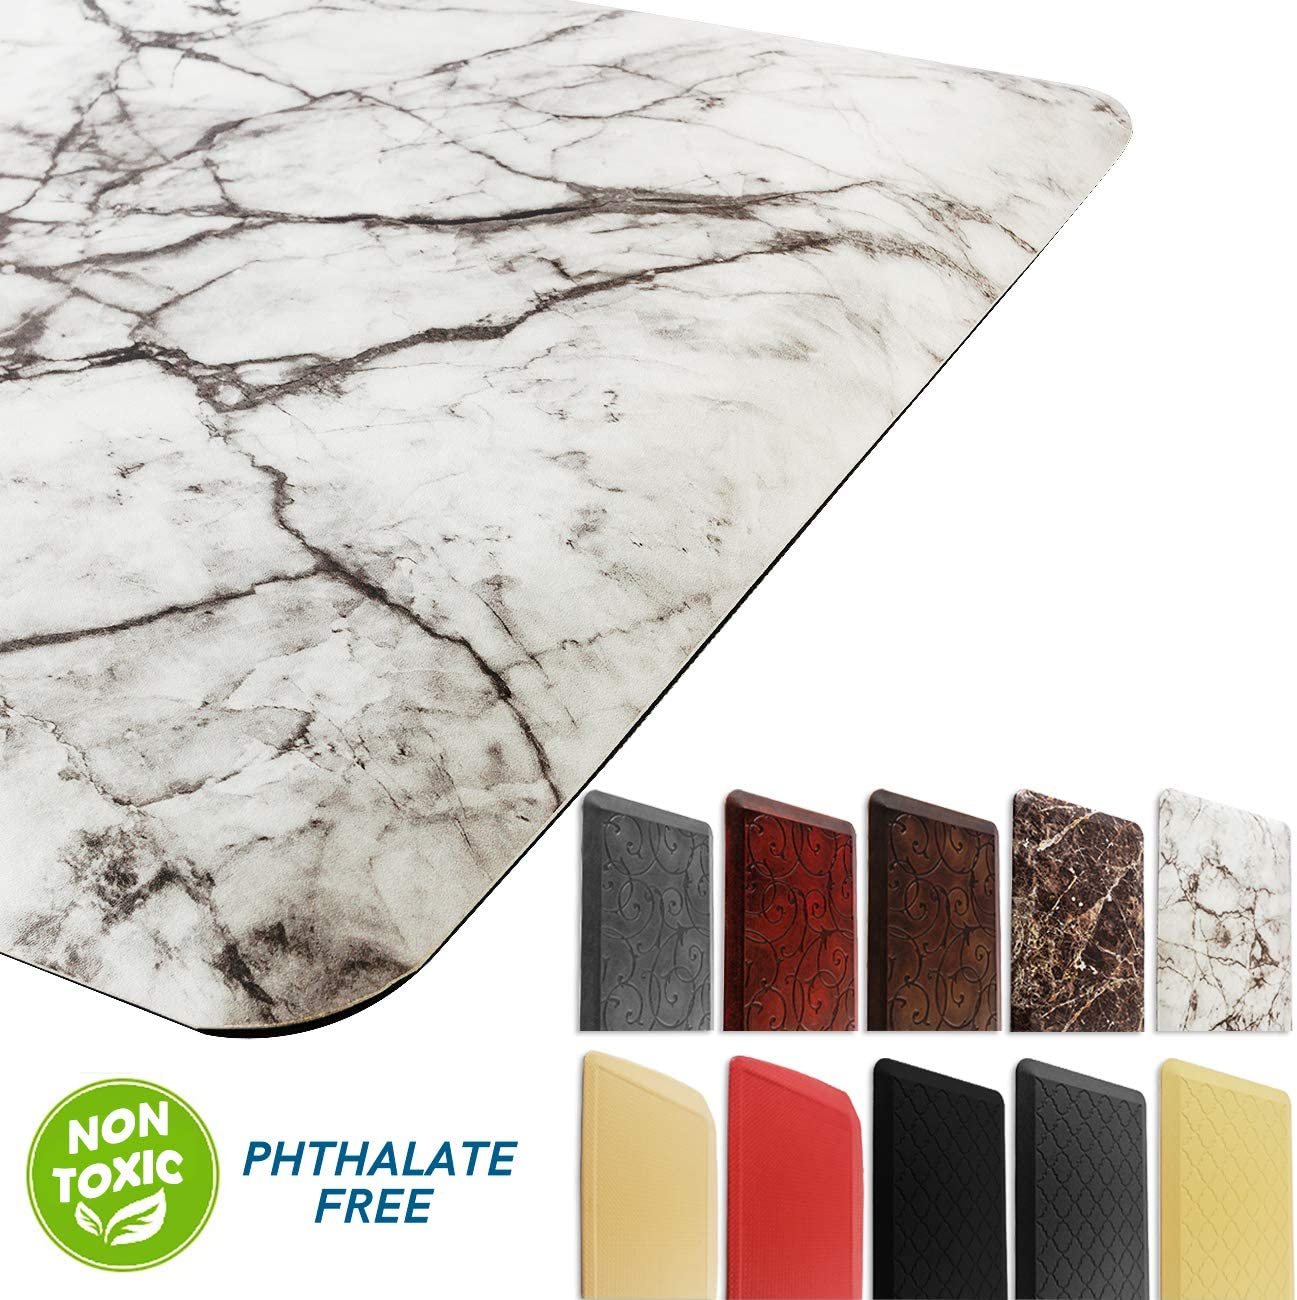 """Marble Kitchen Mat Anti Fatigue Standing Mat Waterproof Nonslip Cushioned Rugs for Office Computer Desk W20x L36x H3/4"""""""